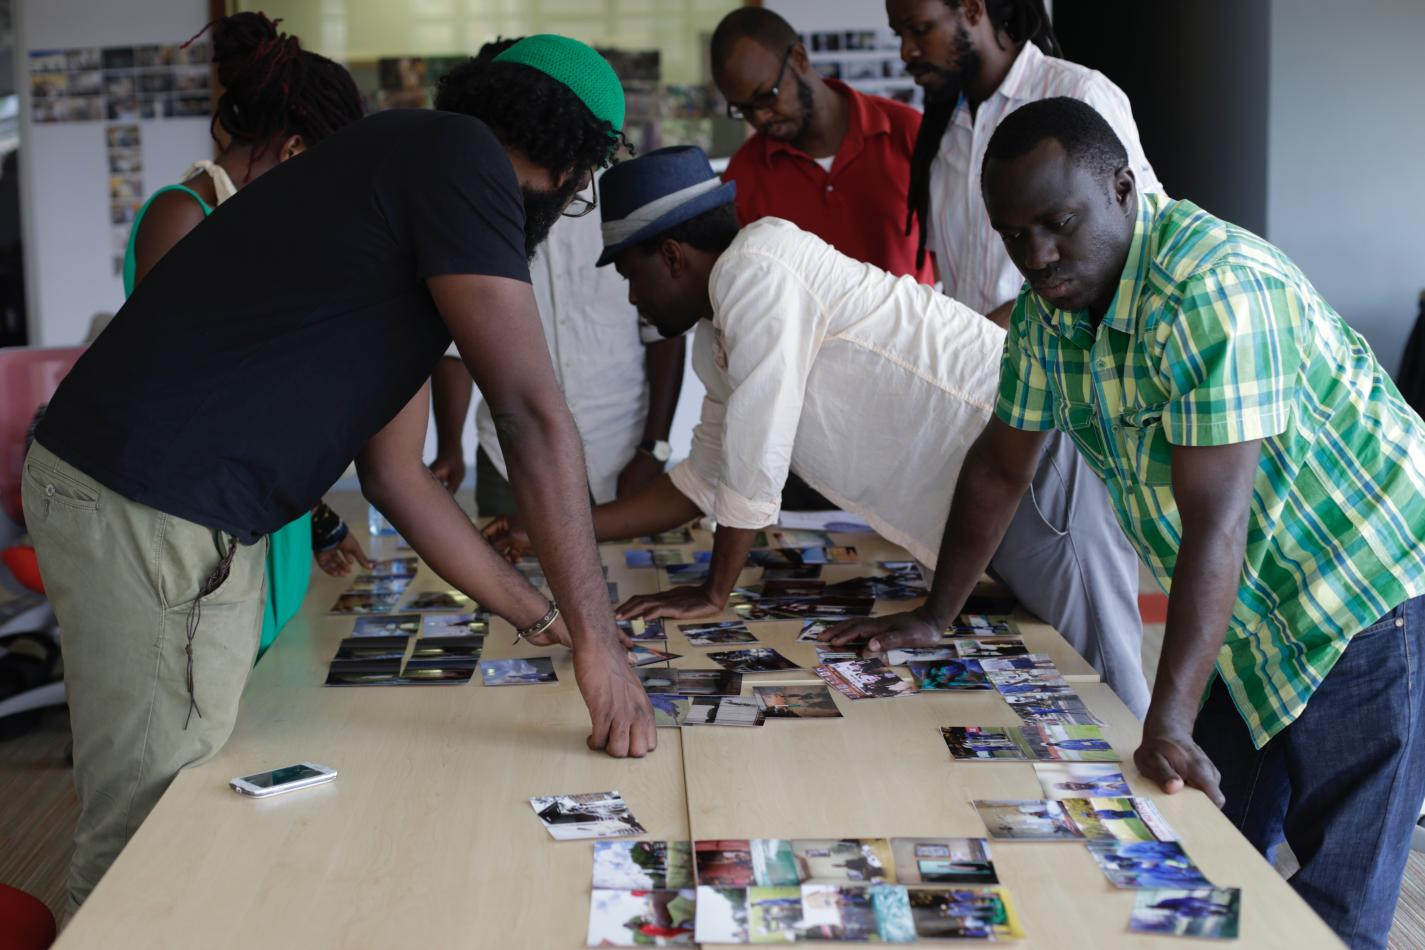 The group from the second satellite masterclass in East Africa during an editing session. © World Press Photo. Sugarcane Magazine does not claim ownership of this photo.